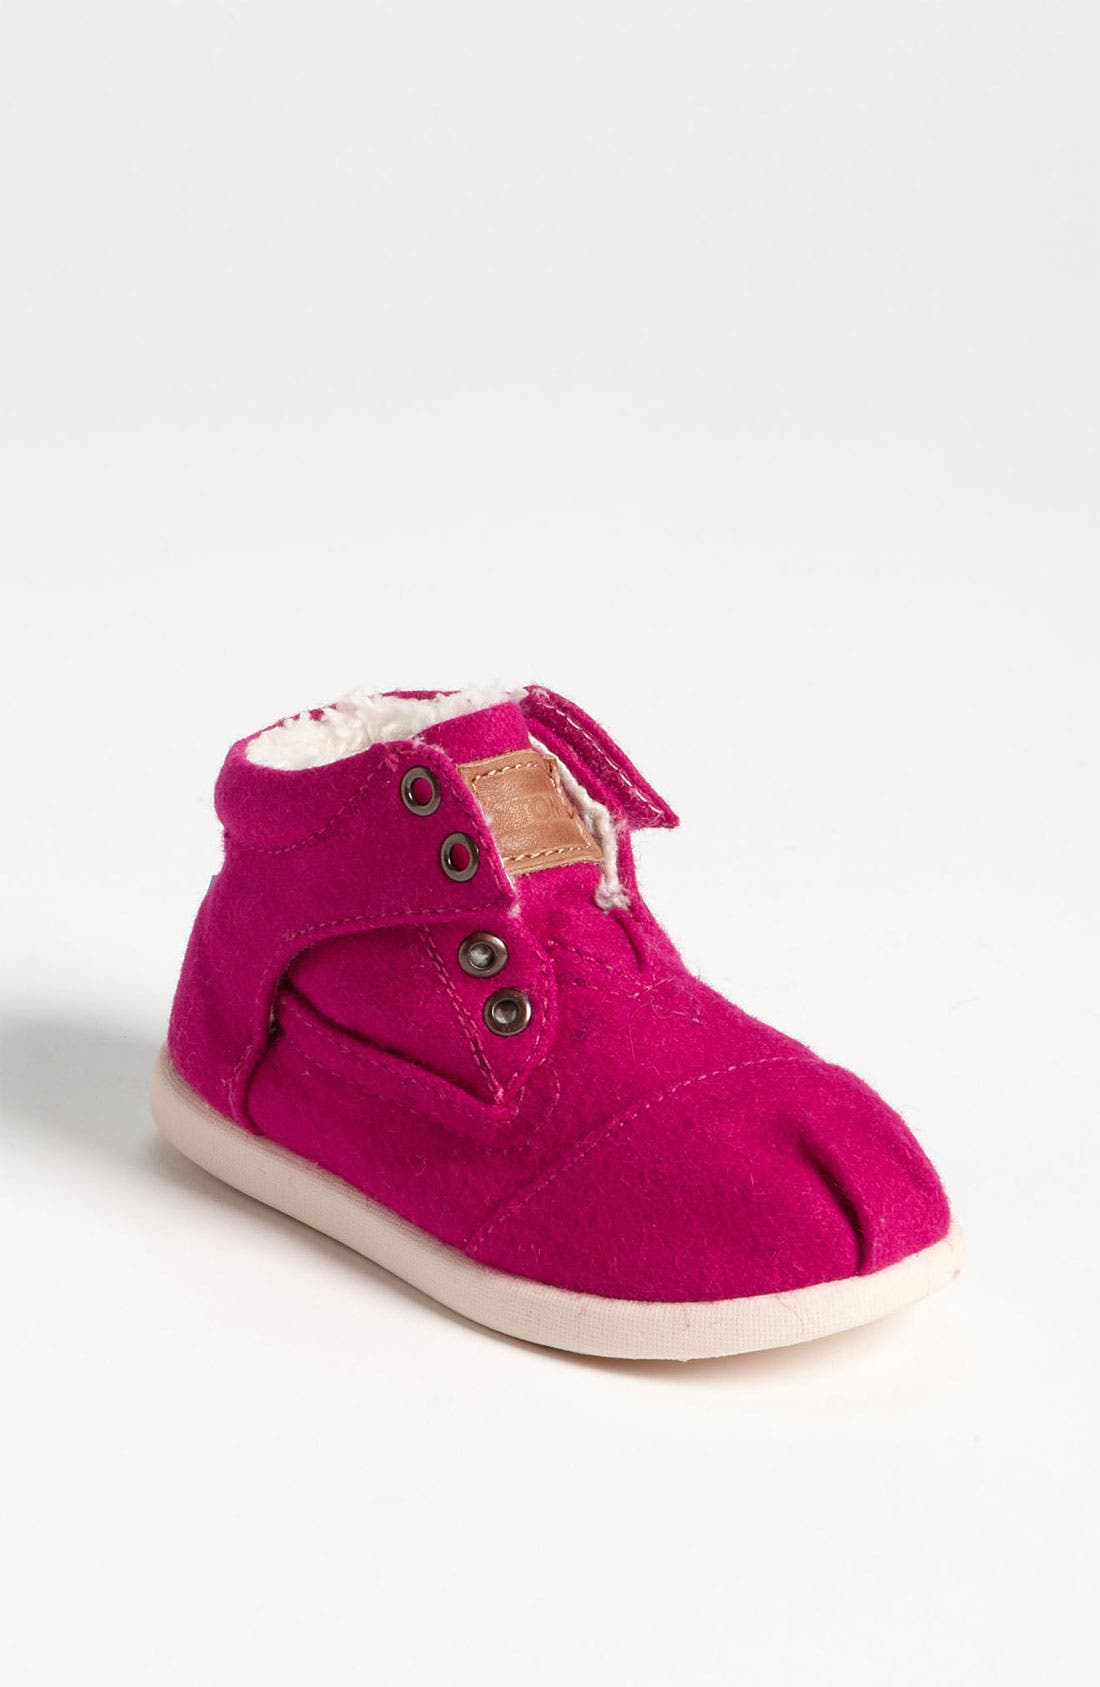 Alternate Image 1 Selected - TOMS 'Botas - Tiny' Wool Boot (Baby, Walker, Toddler)